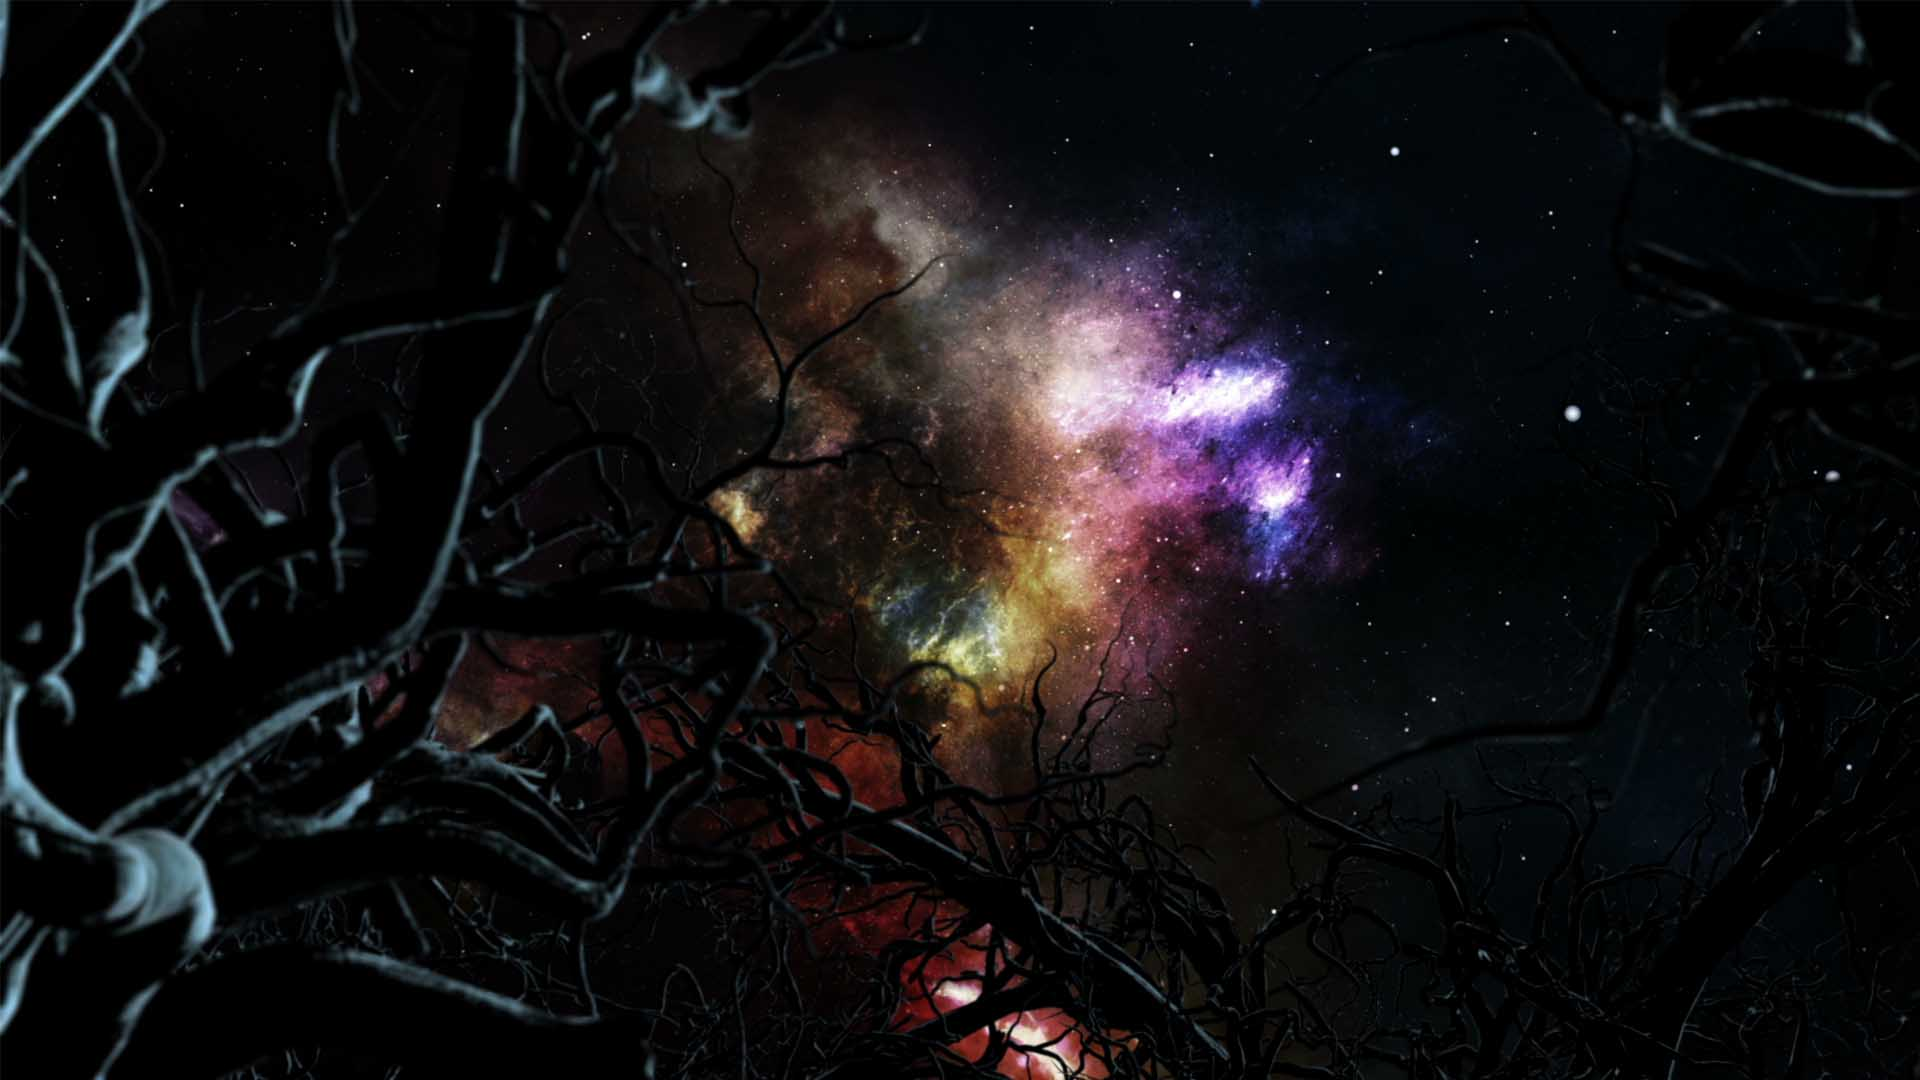 Space Sky Universe Abstract Motion Background wallpaper video HD VJ Loop